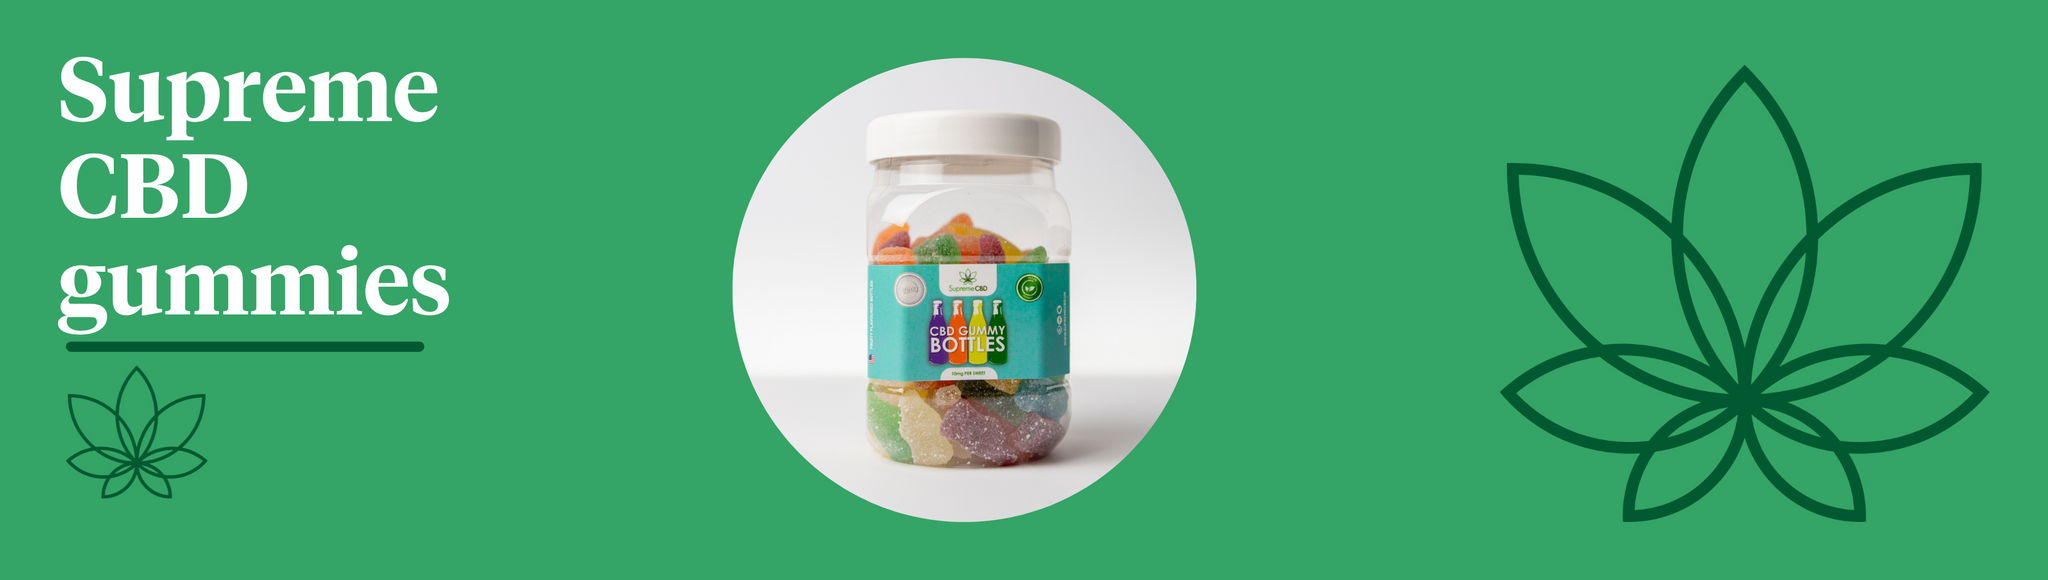 A green background with the Supreme CBD logo and a bottle of CBD gummies in the centre showing Supreme CBD gummies.